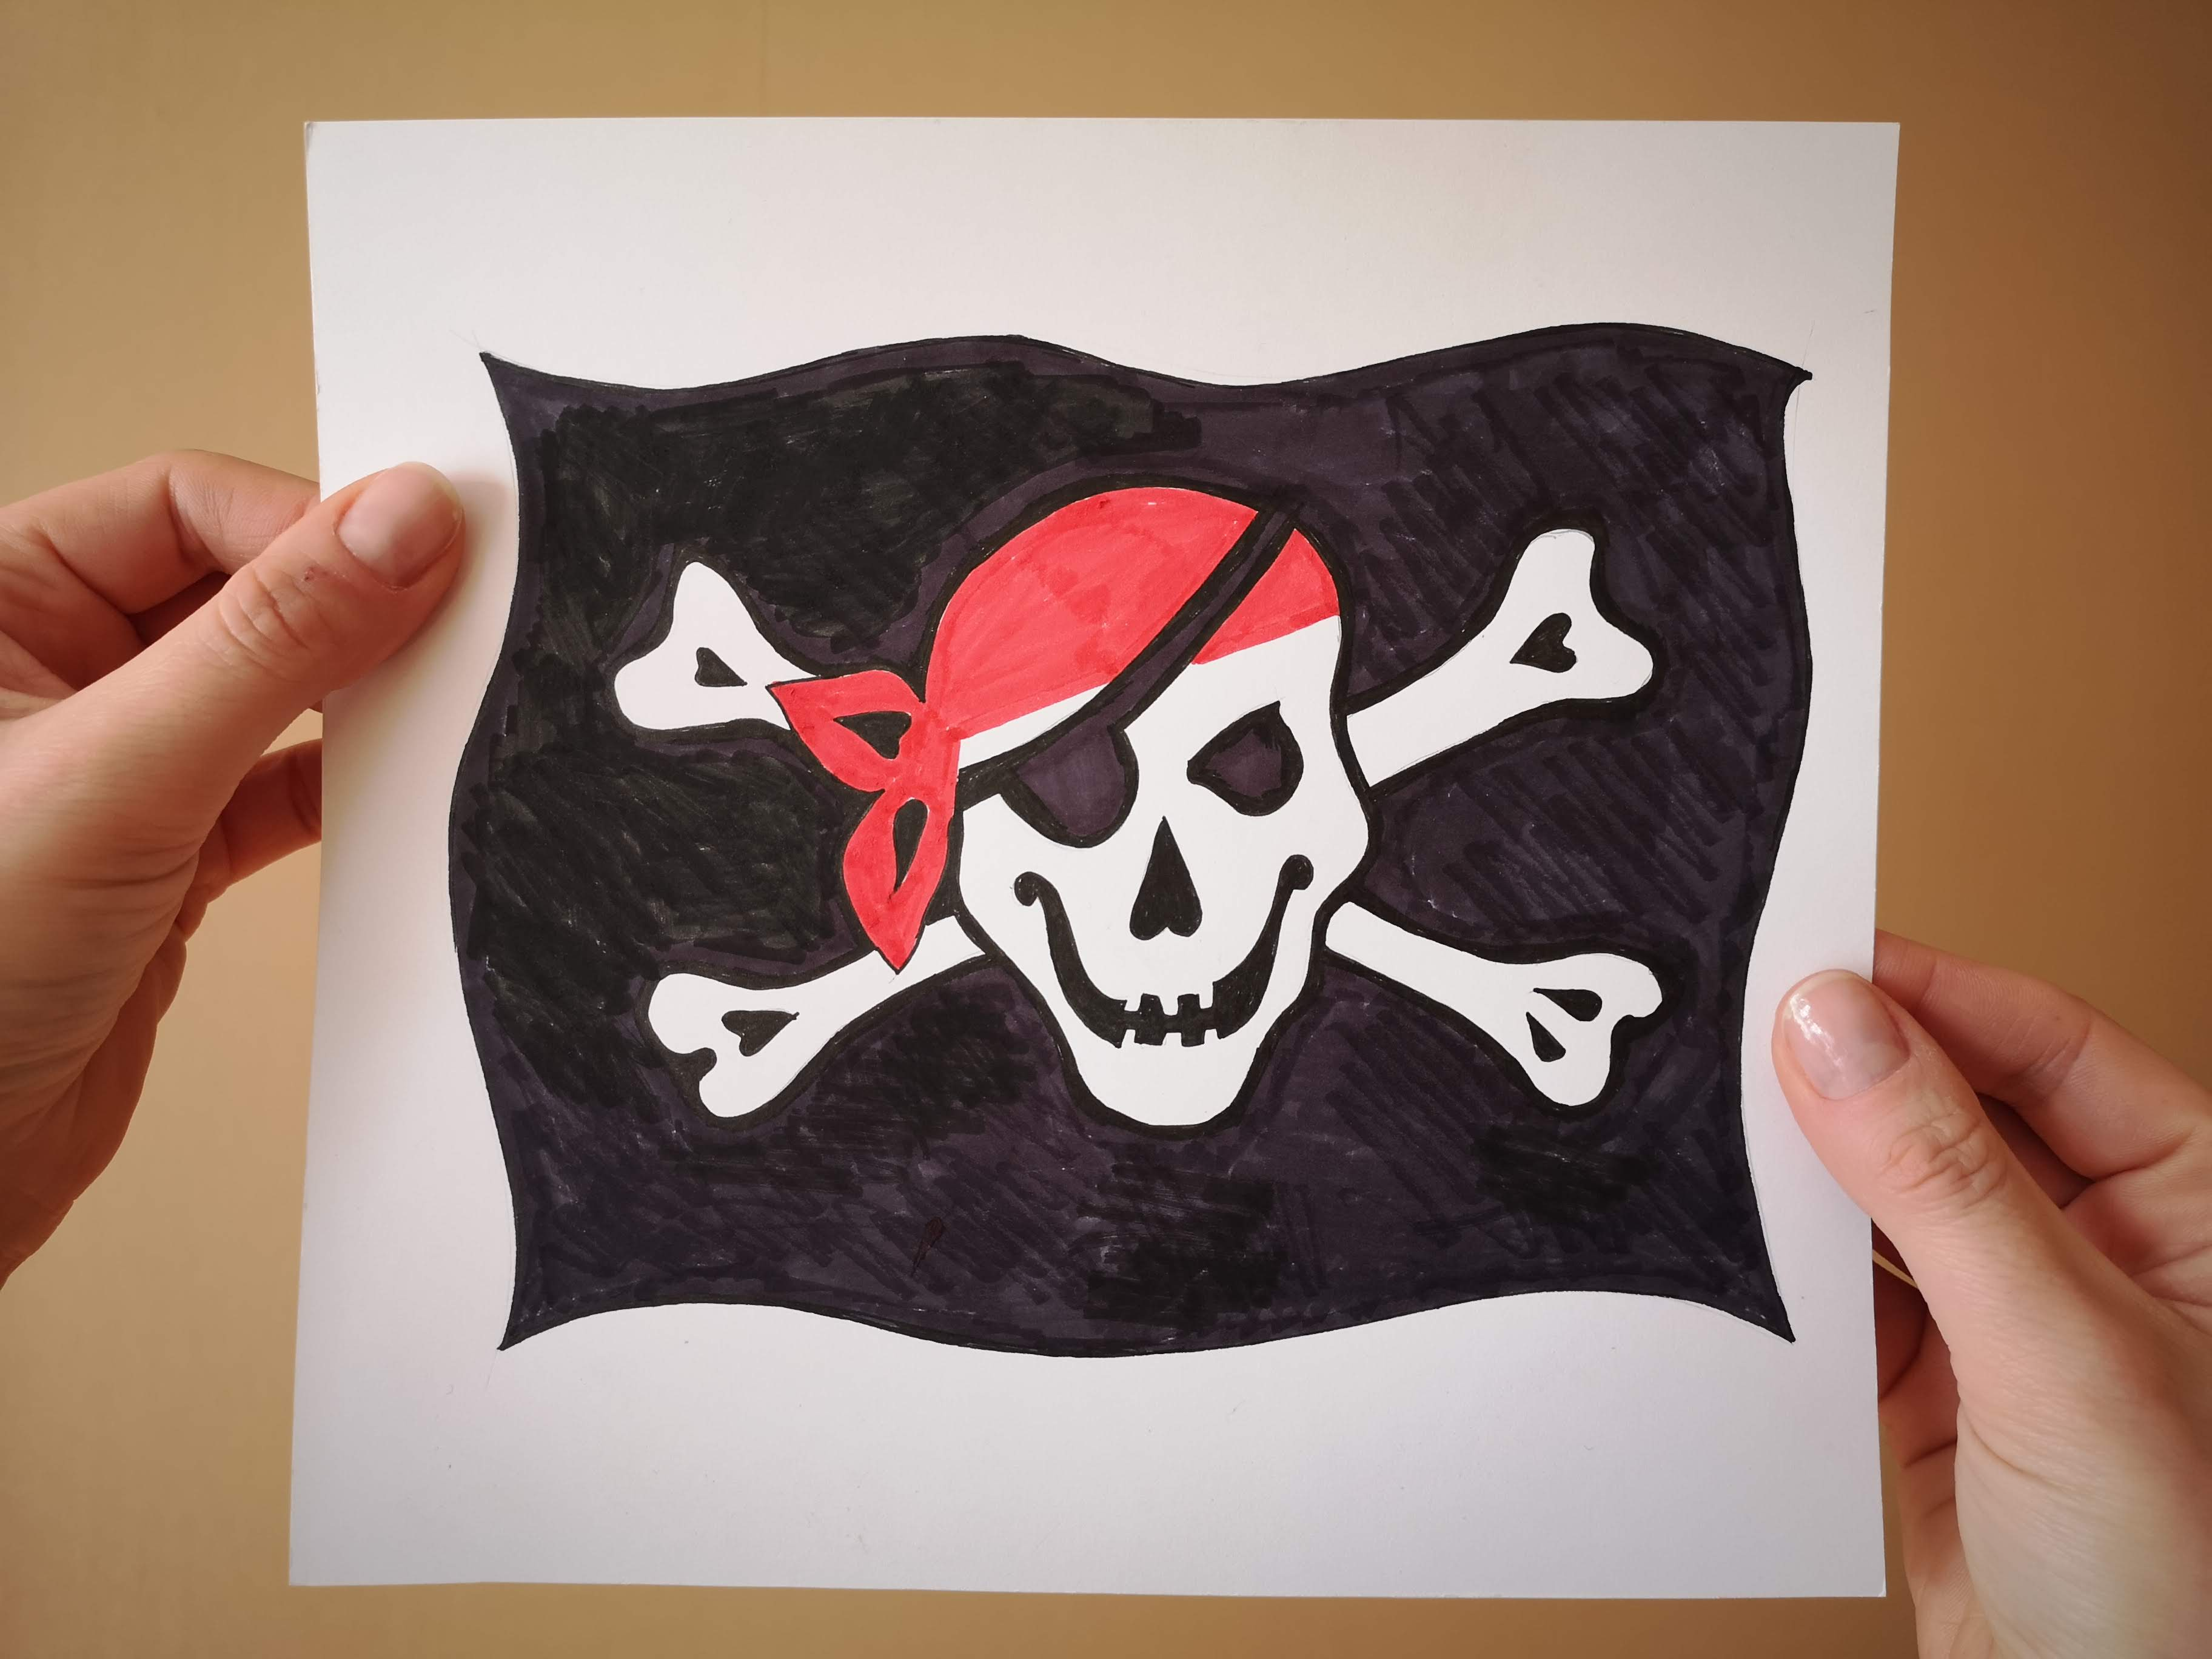 Courtesy Flag Jolly Roger Collection Ships and Boats Tamed Winds t-shirt shop and sailing blog